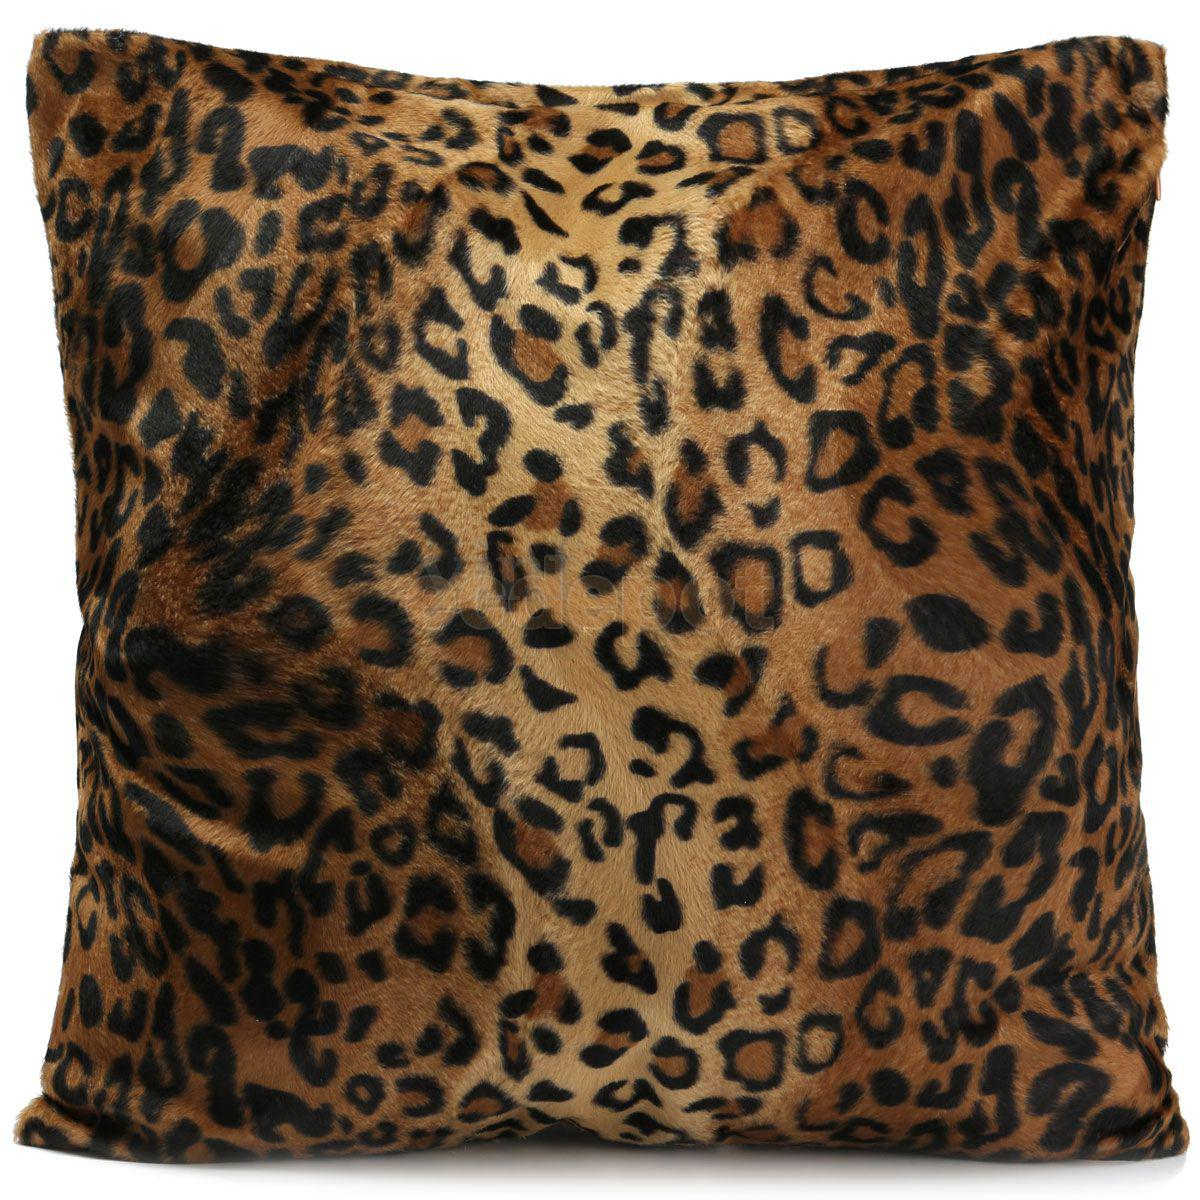 Leopard Zebra Print Pillow Case Sofa Throw Cushion Cover Home Bed Decor 5  Patterns(China